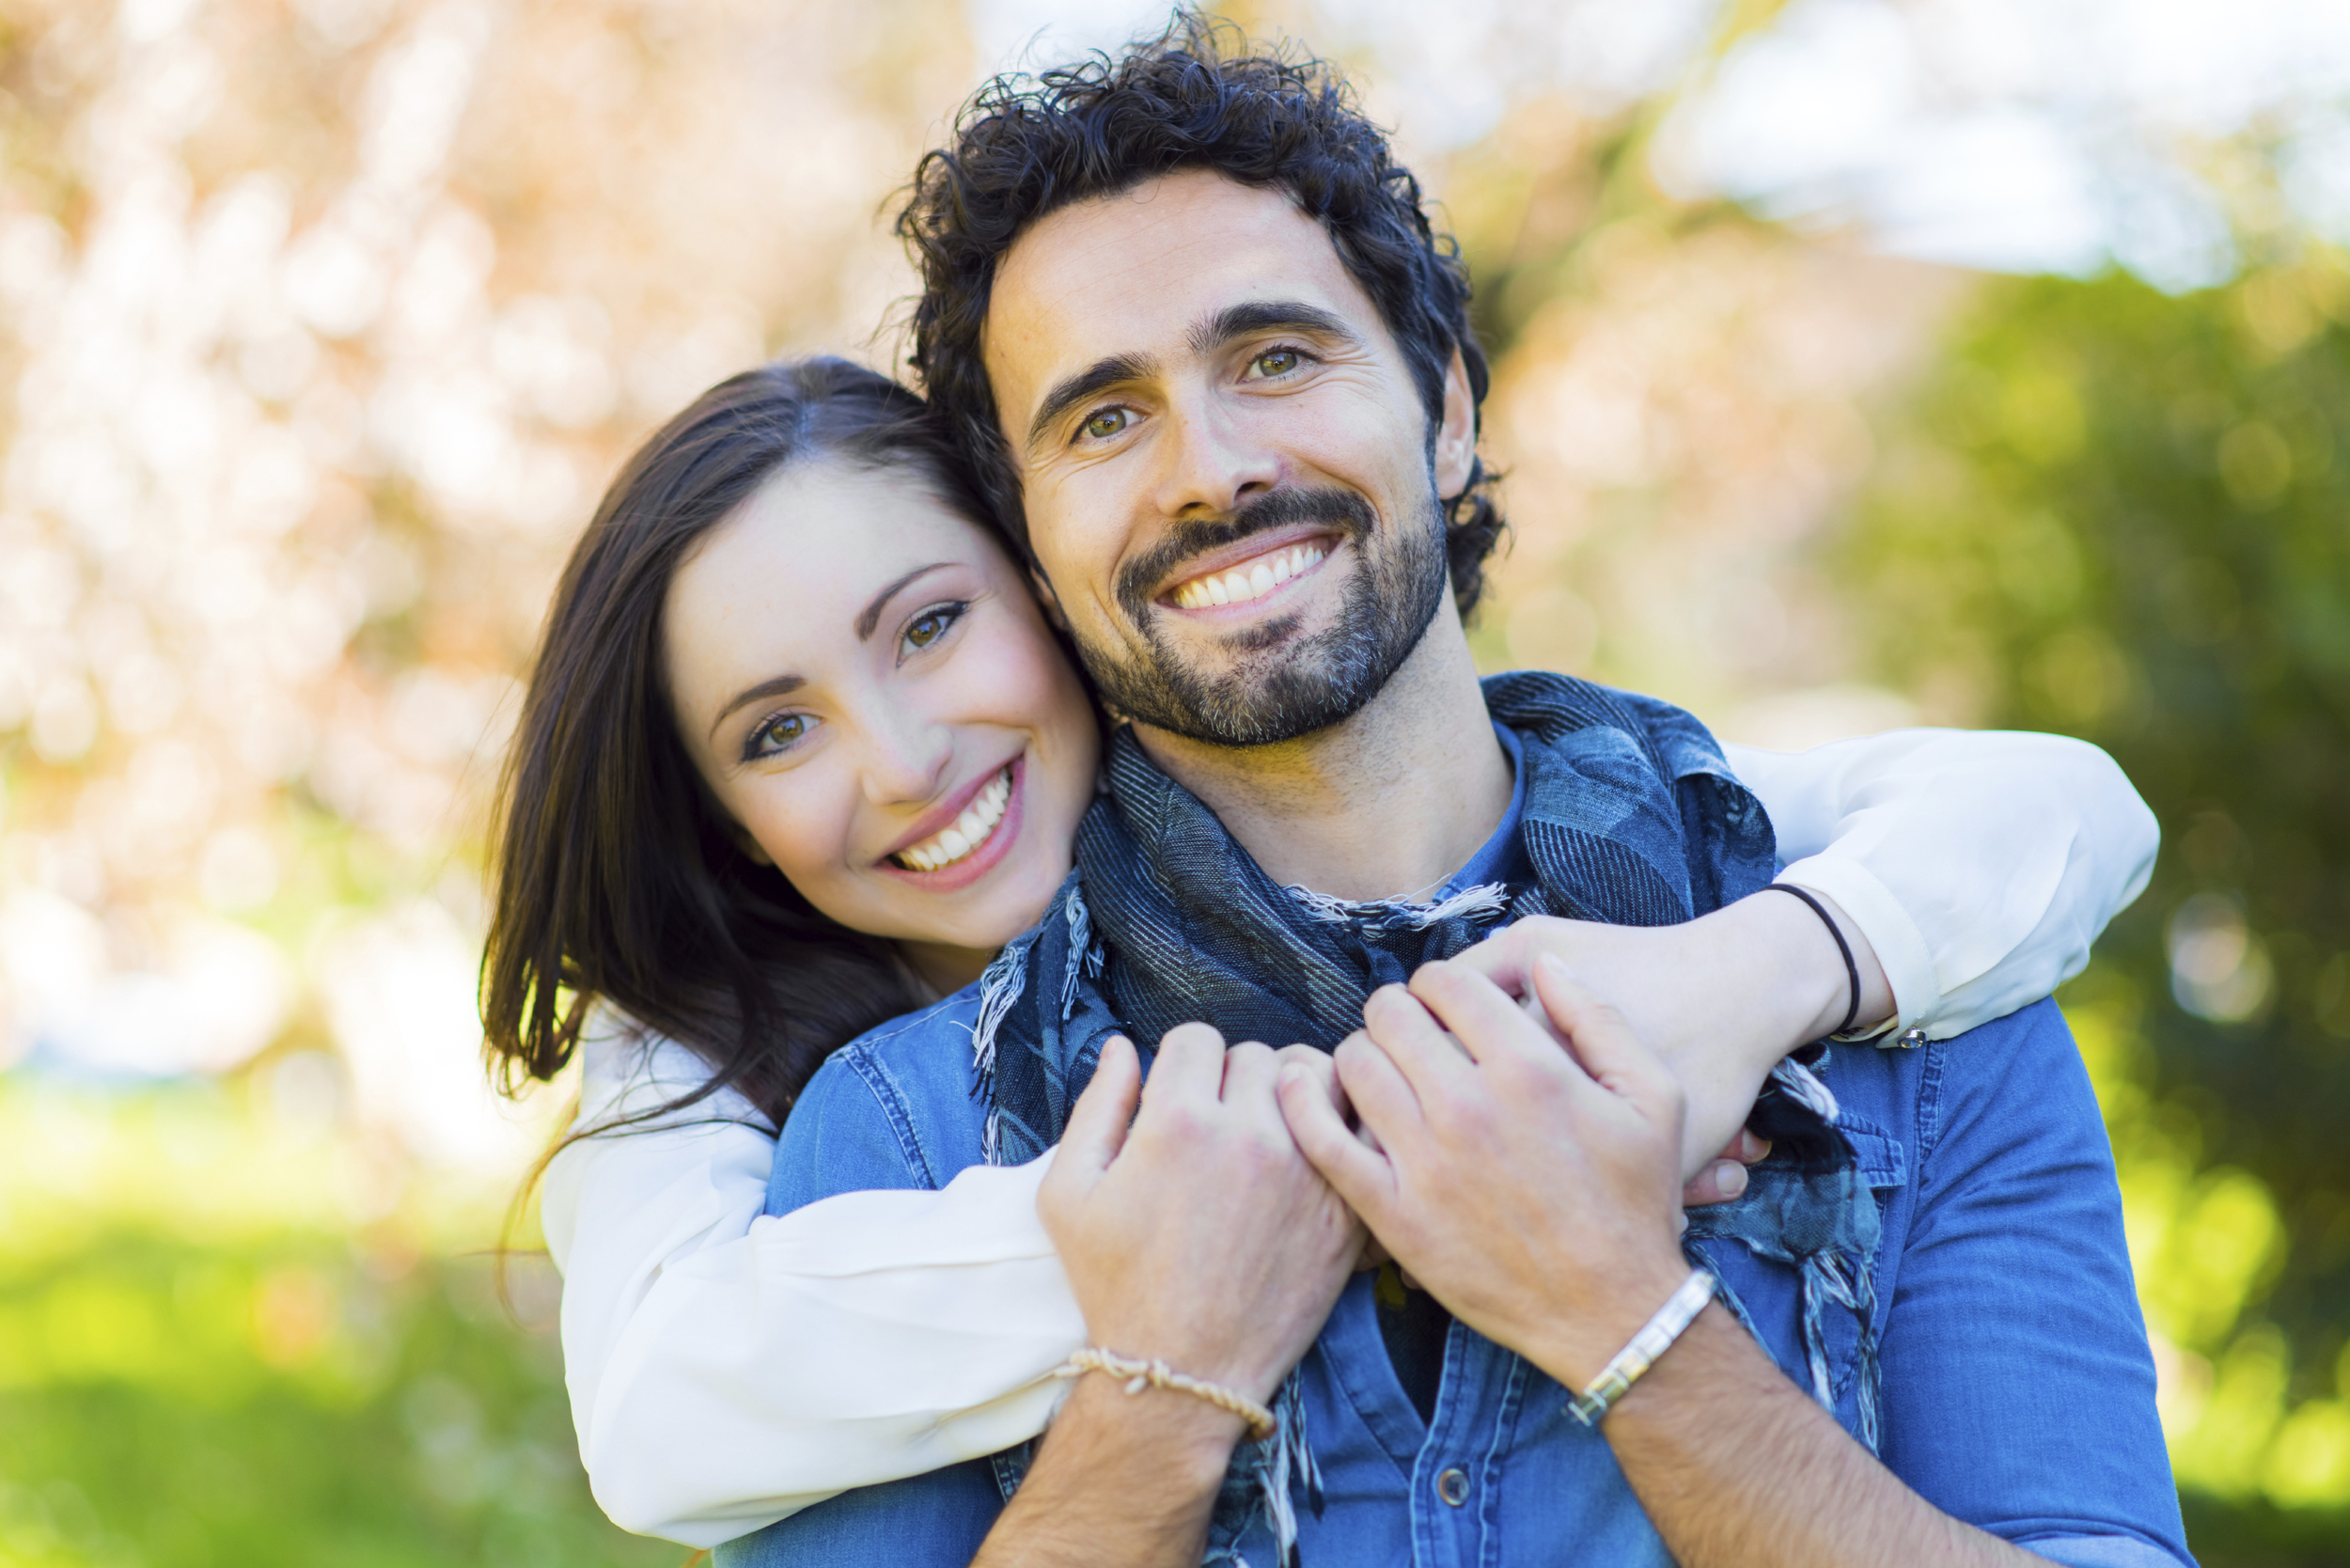 couple-embracing-and-smiling.jpg